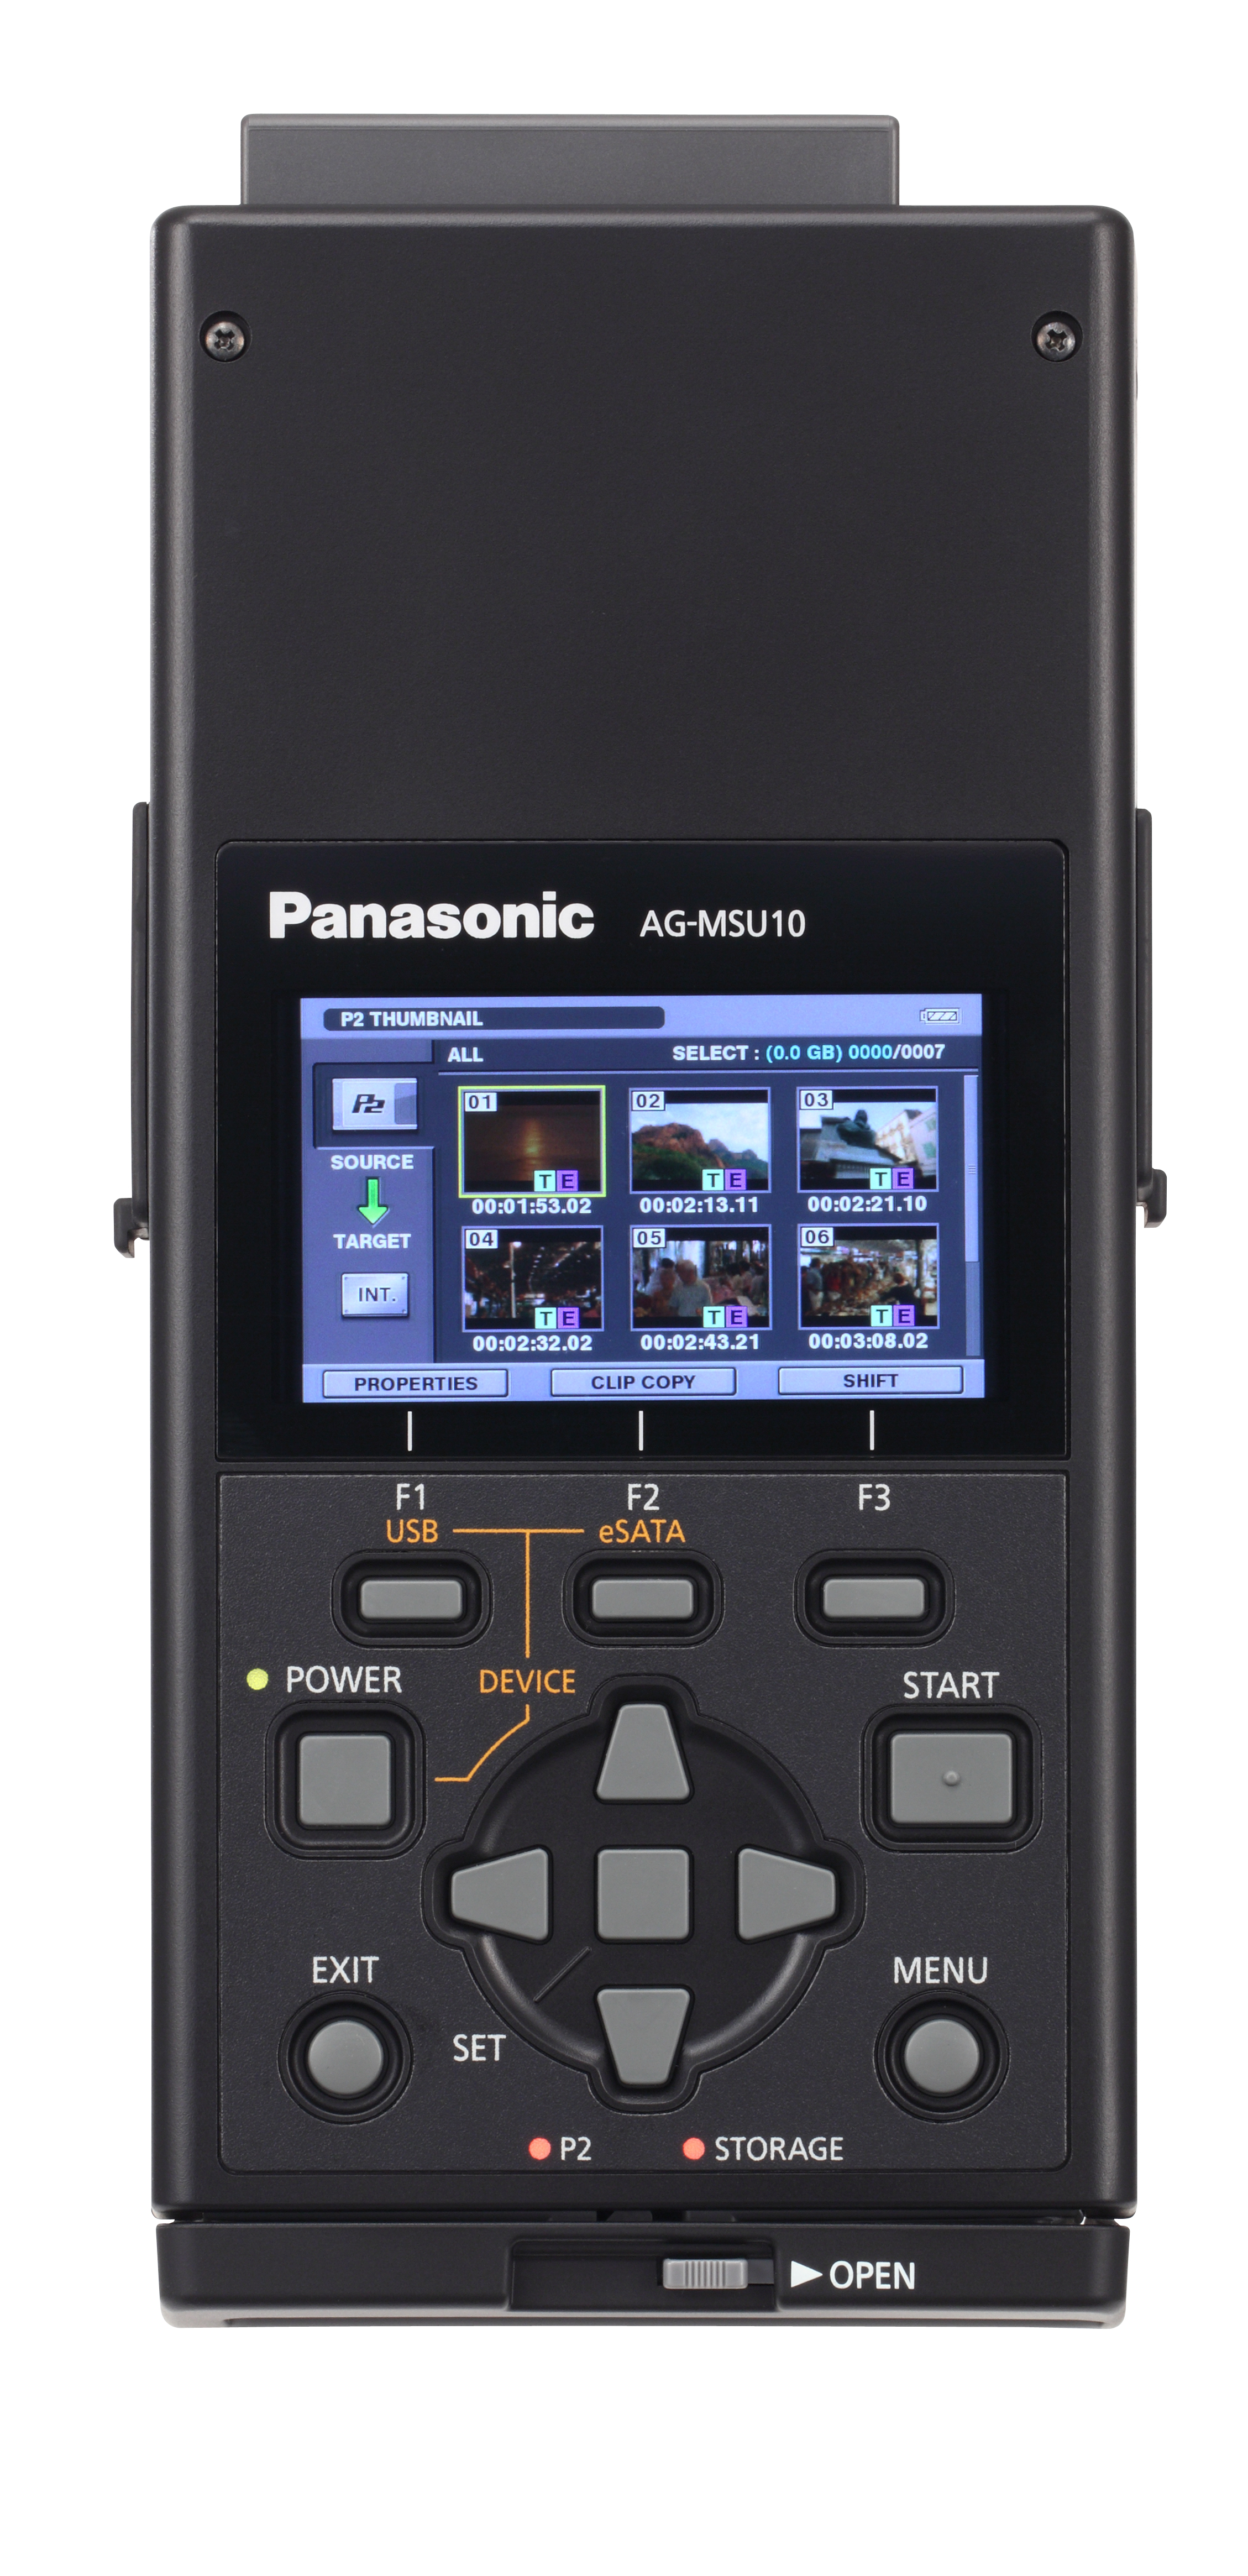 Panasonic ag msu10 manual transmission